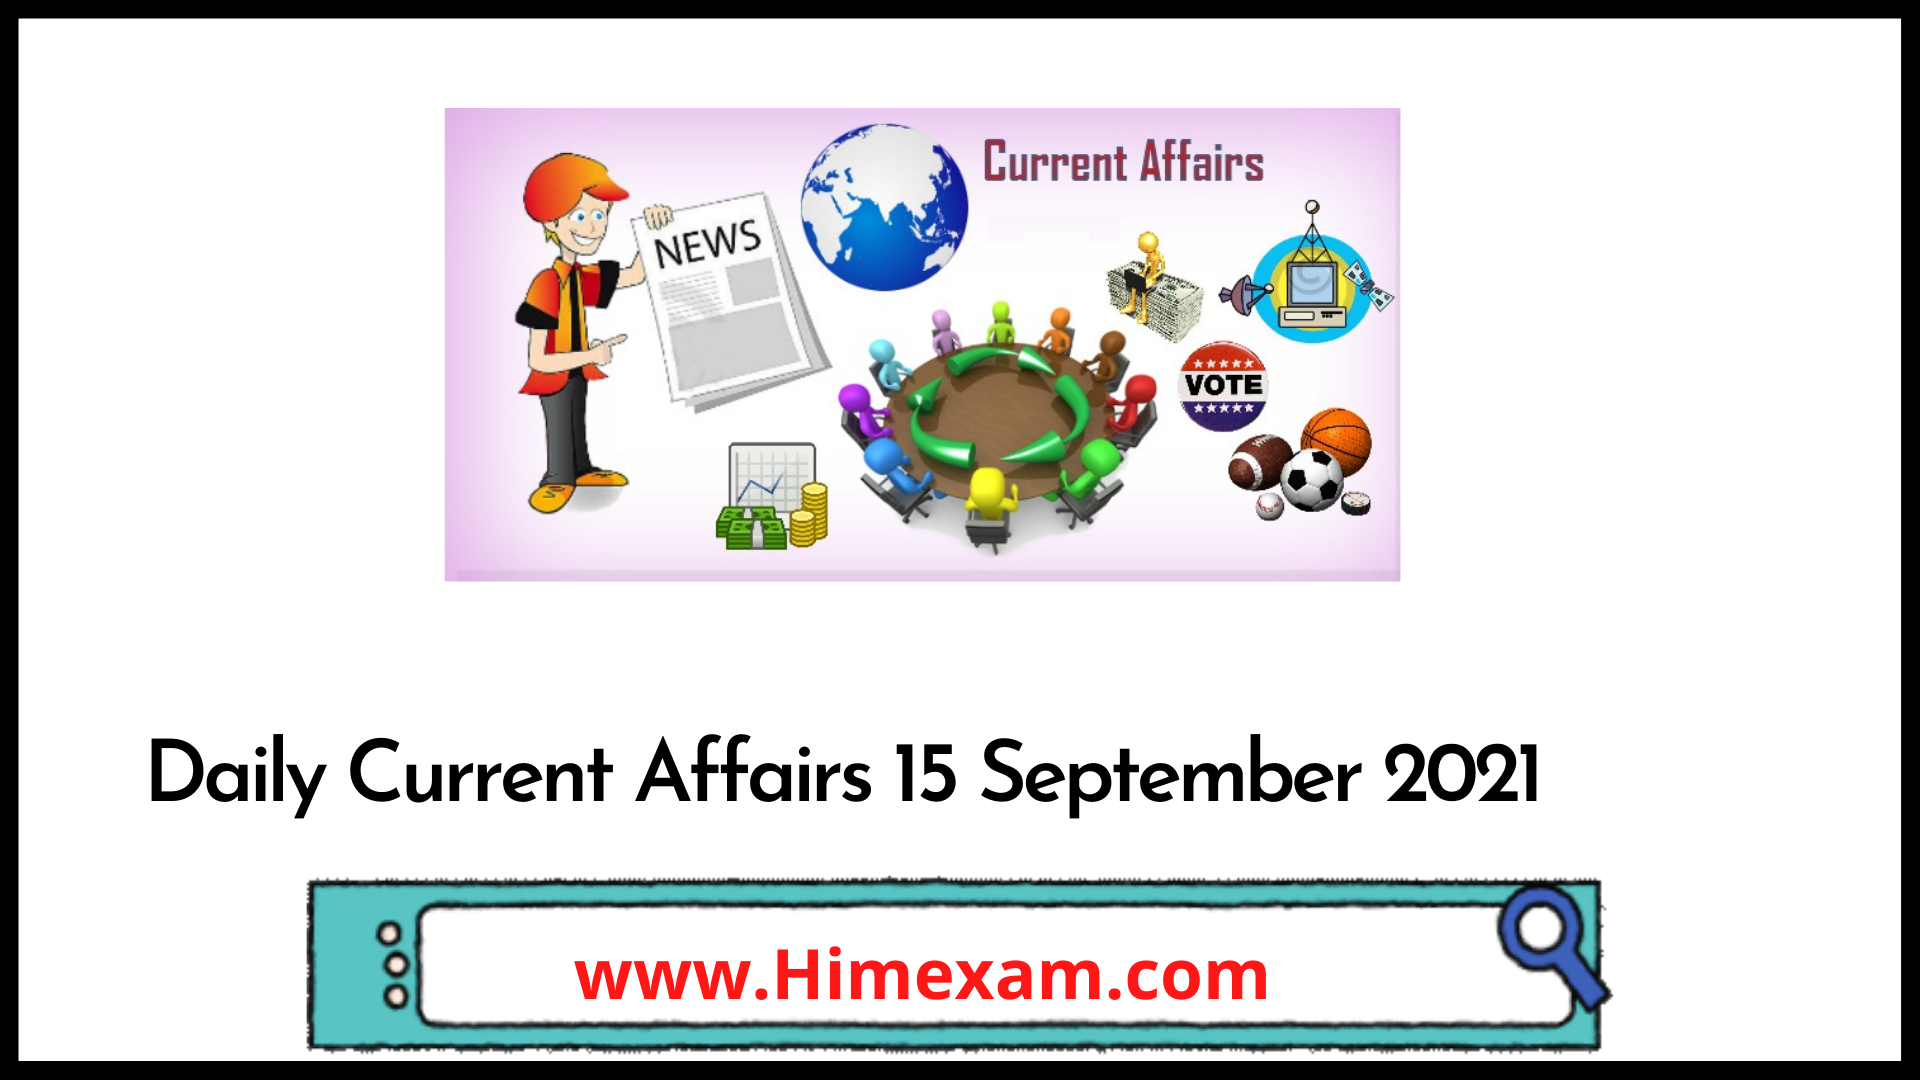 Daily Current Affairs 15 September 2021